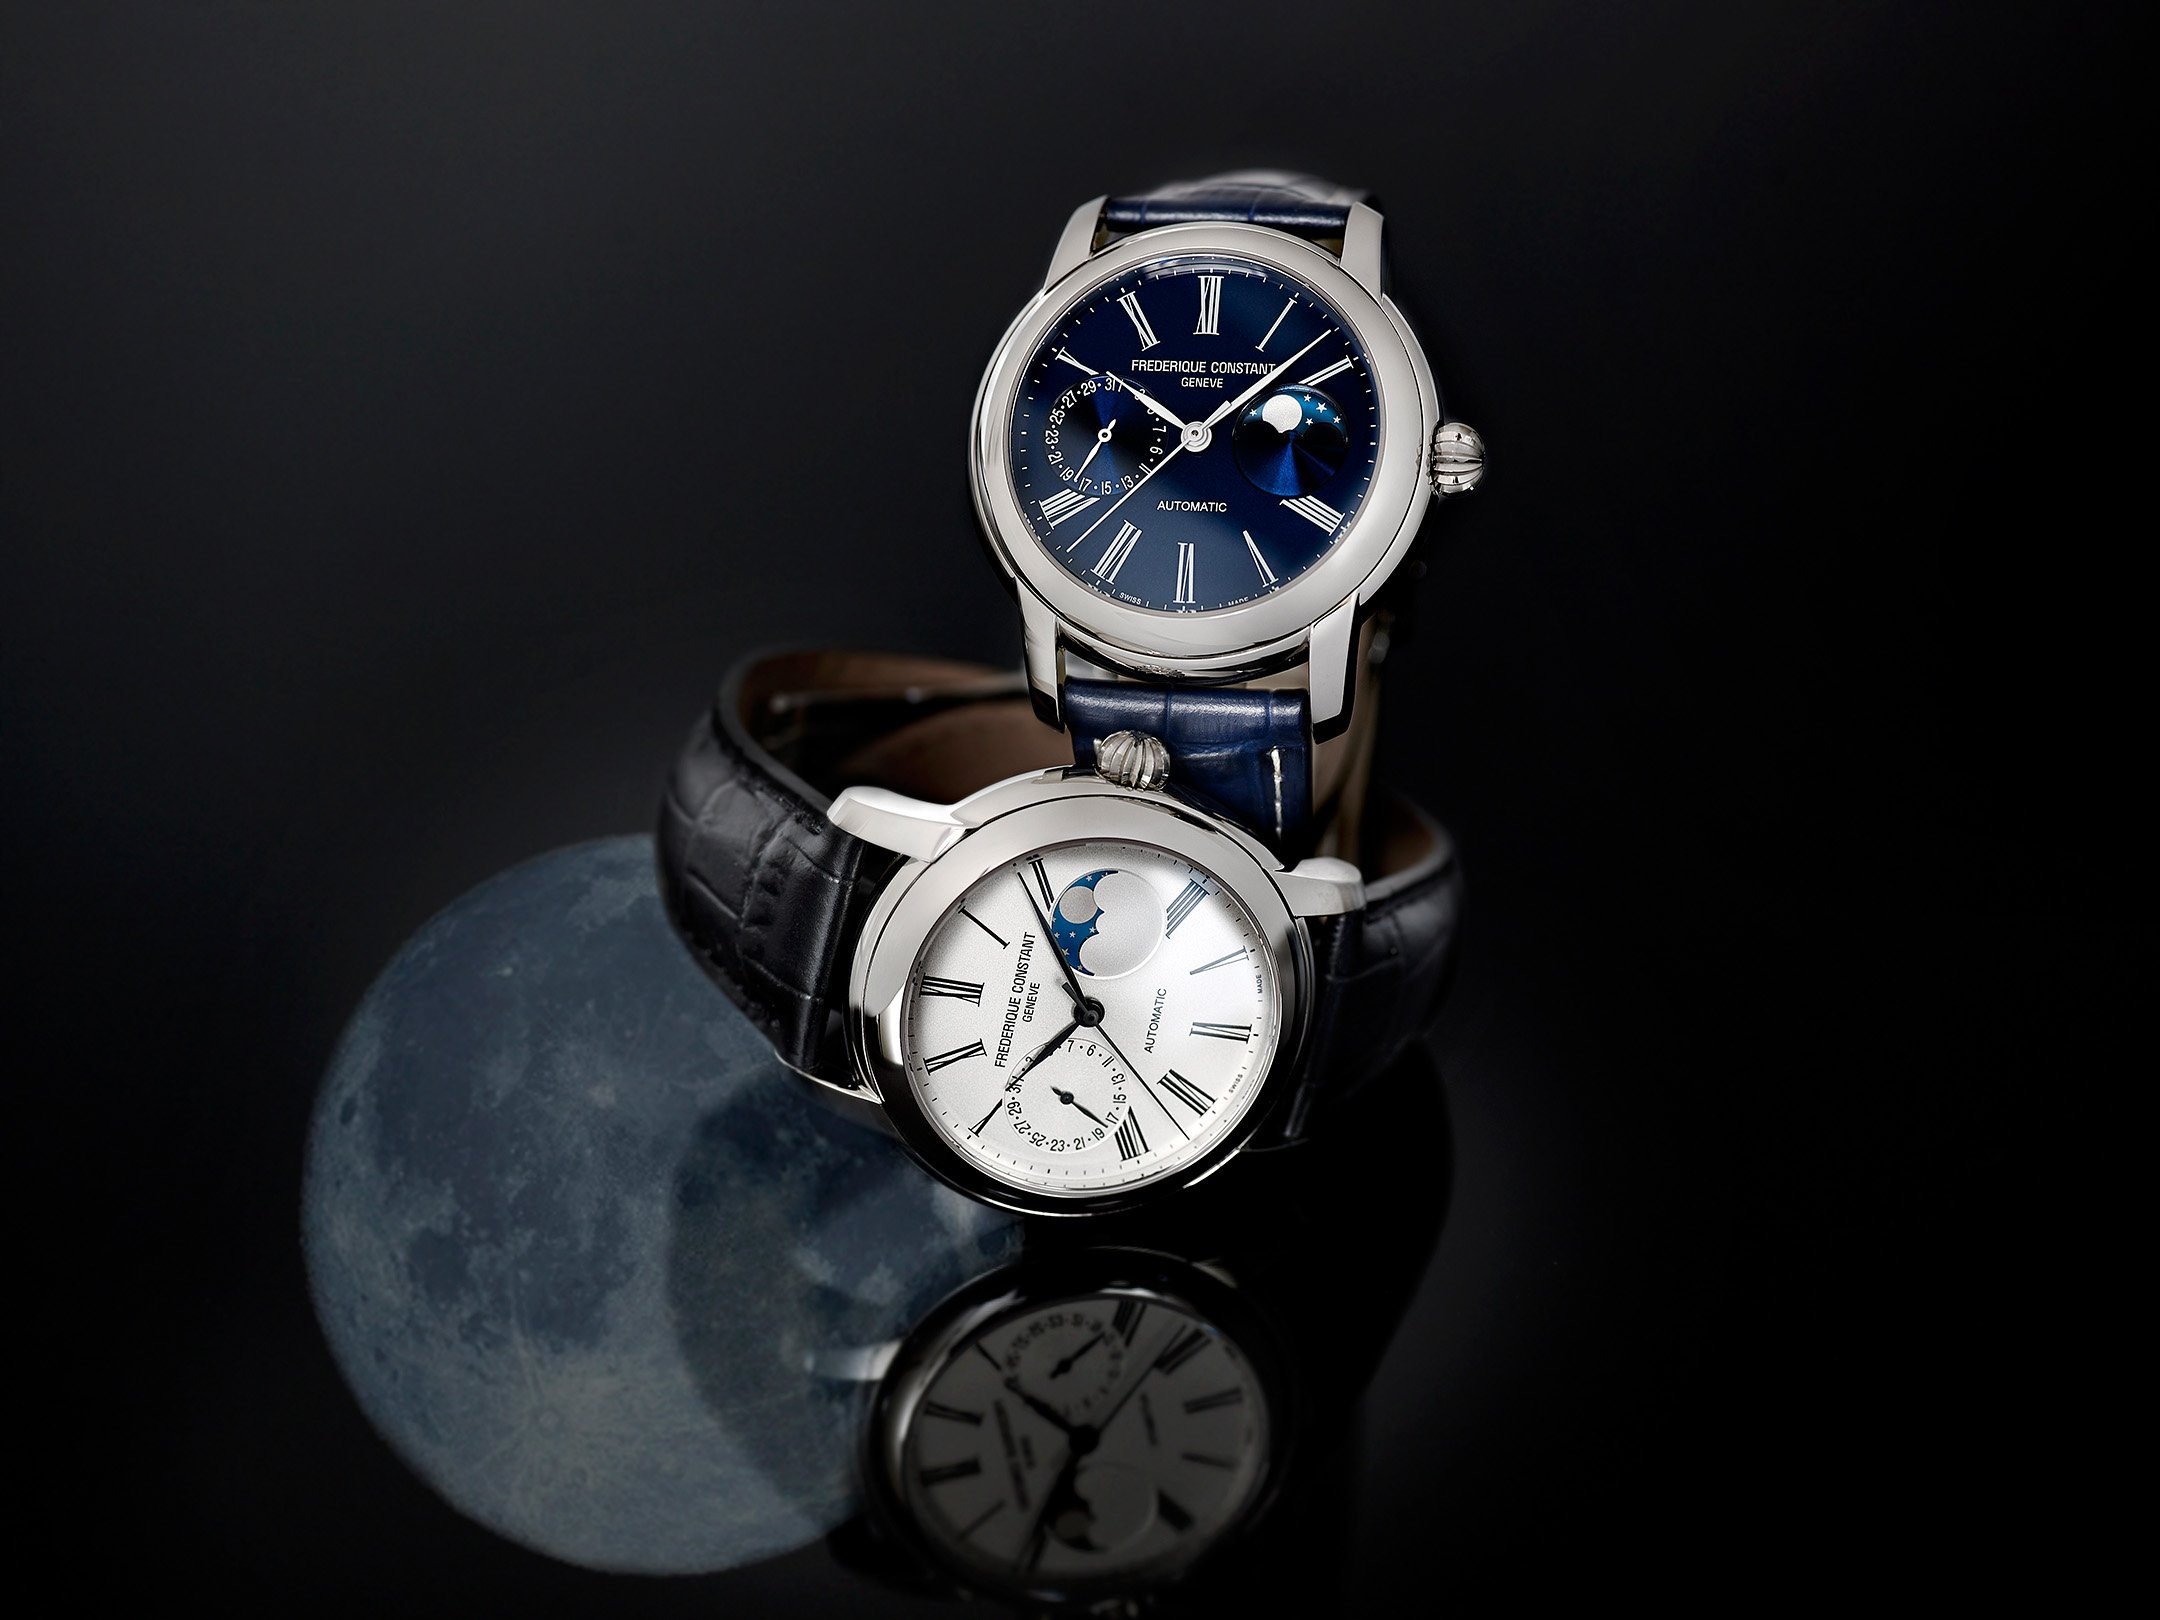 Best Moonphase watch under 5000 - FREDRIQUE CONSTANT CLASSIC MOONPHASE MANUFACTURE